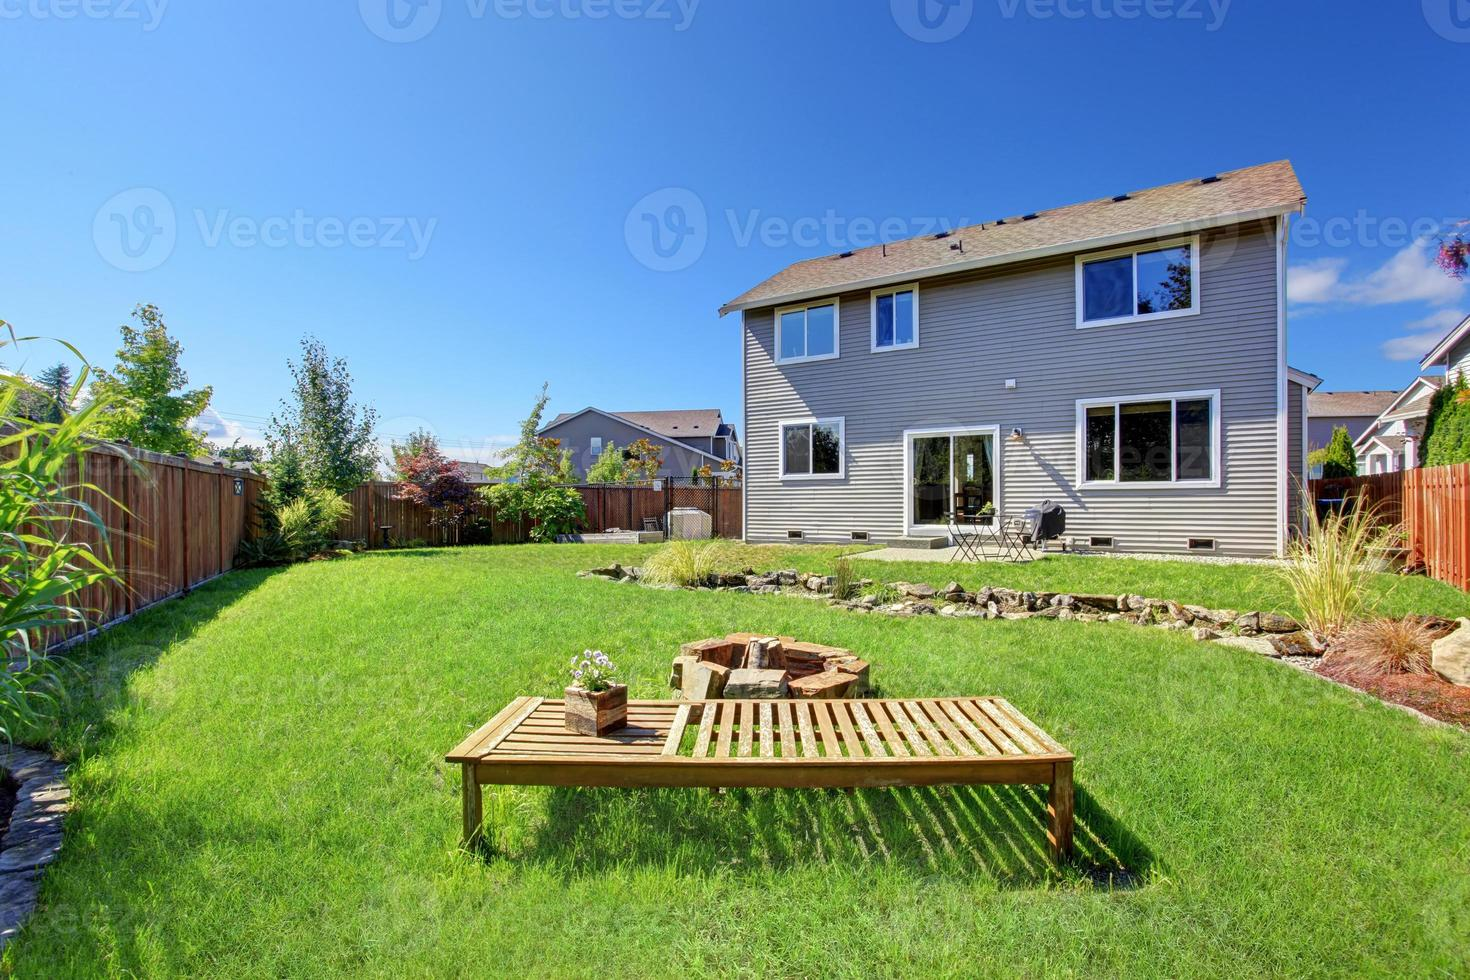 House with large backyard and patio area photo